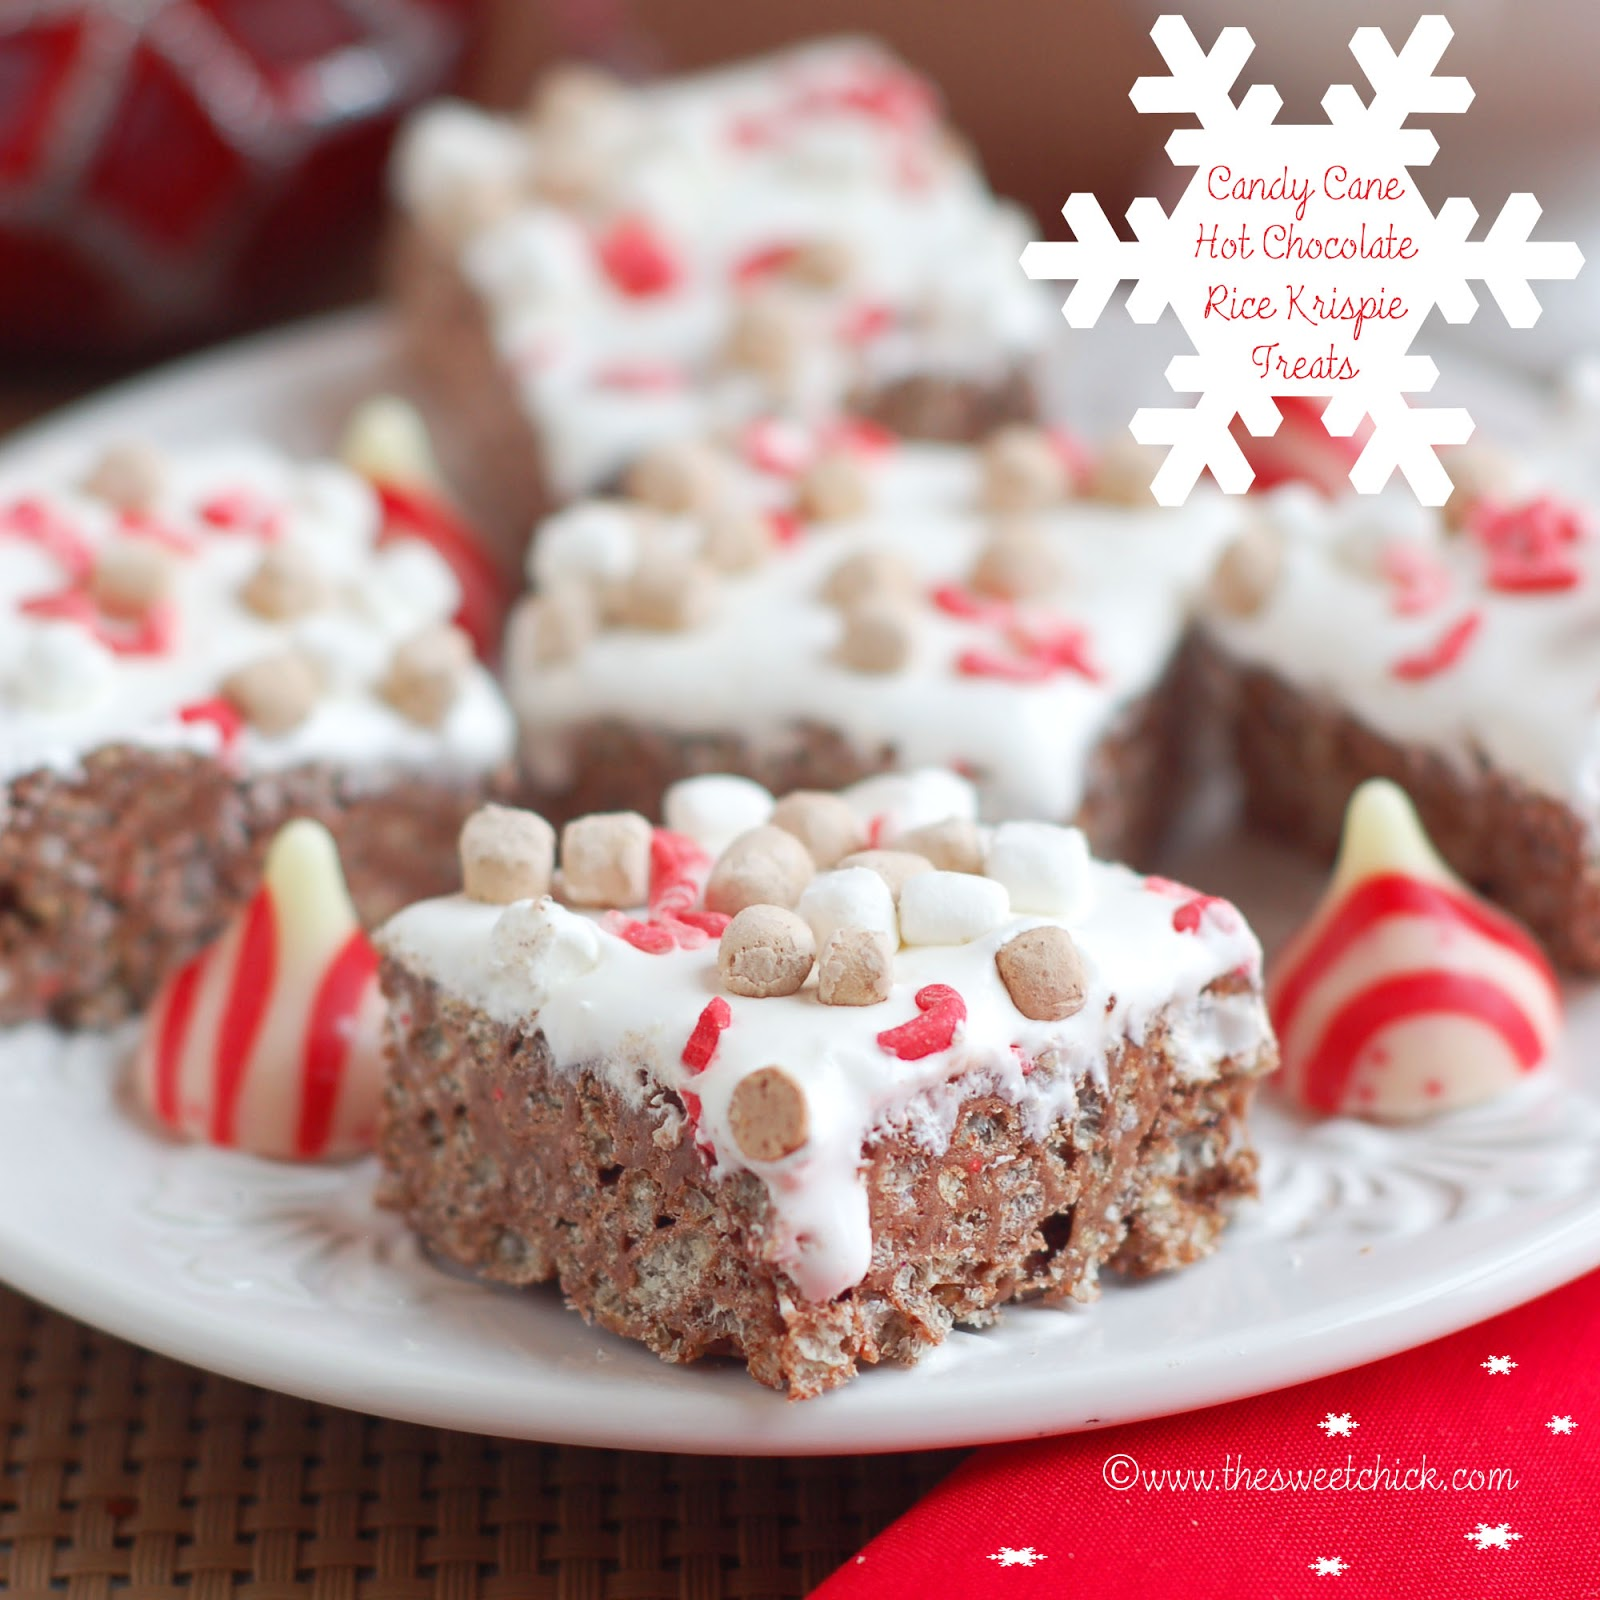 The Sweet Chick: Candy Cane Hot Chocolate Rice Krispie Treats ...